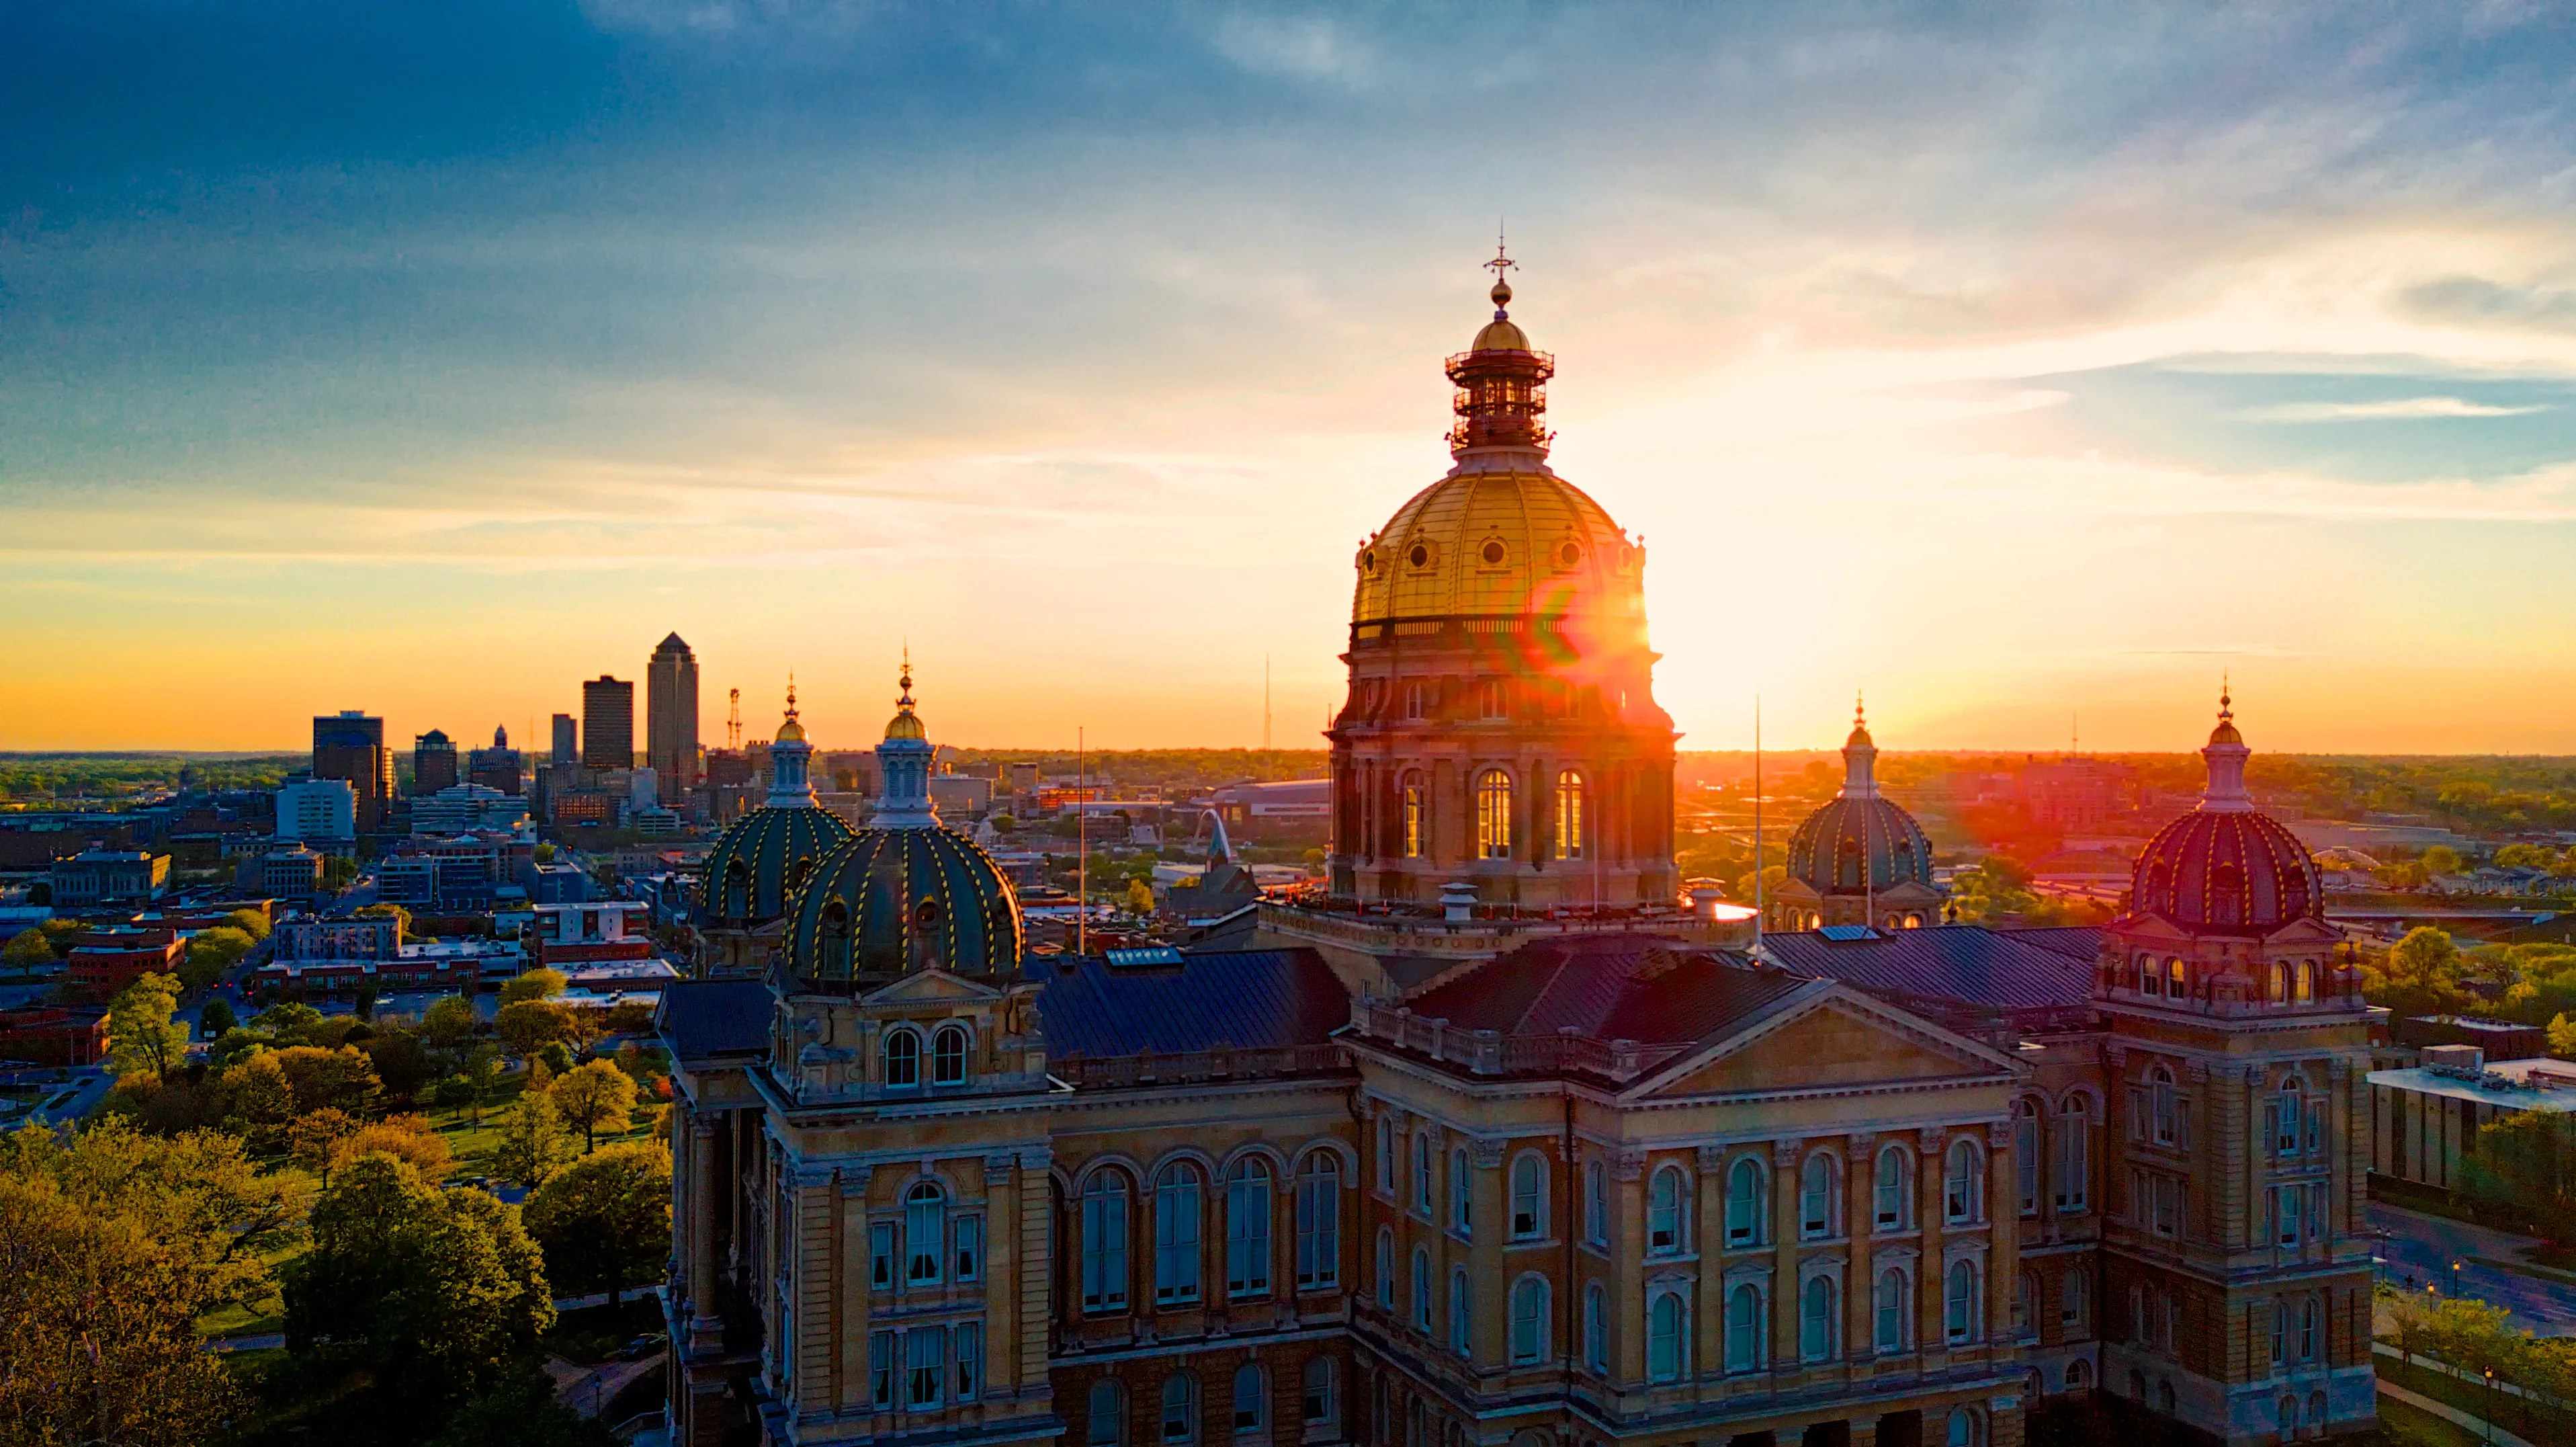 Sunset over the Iowa capitol in Des Moines